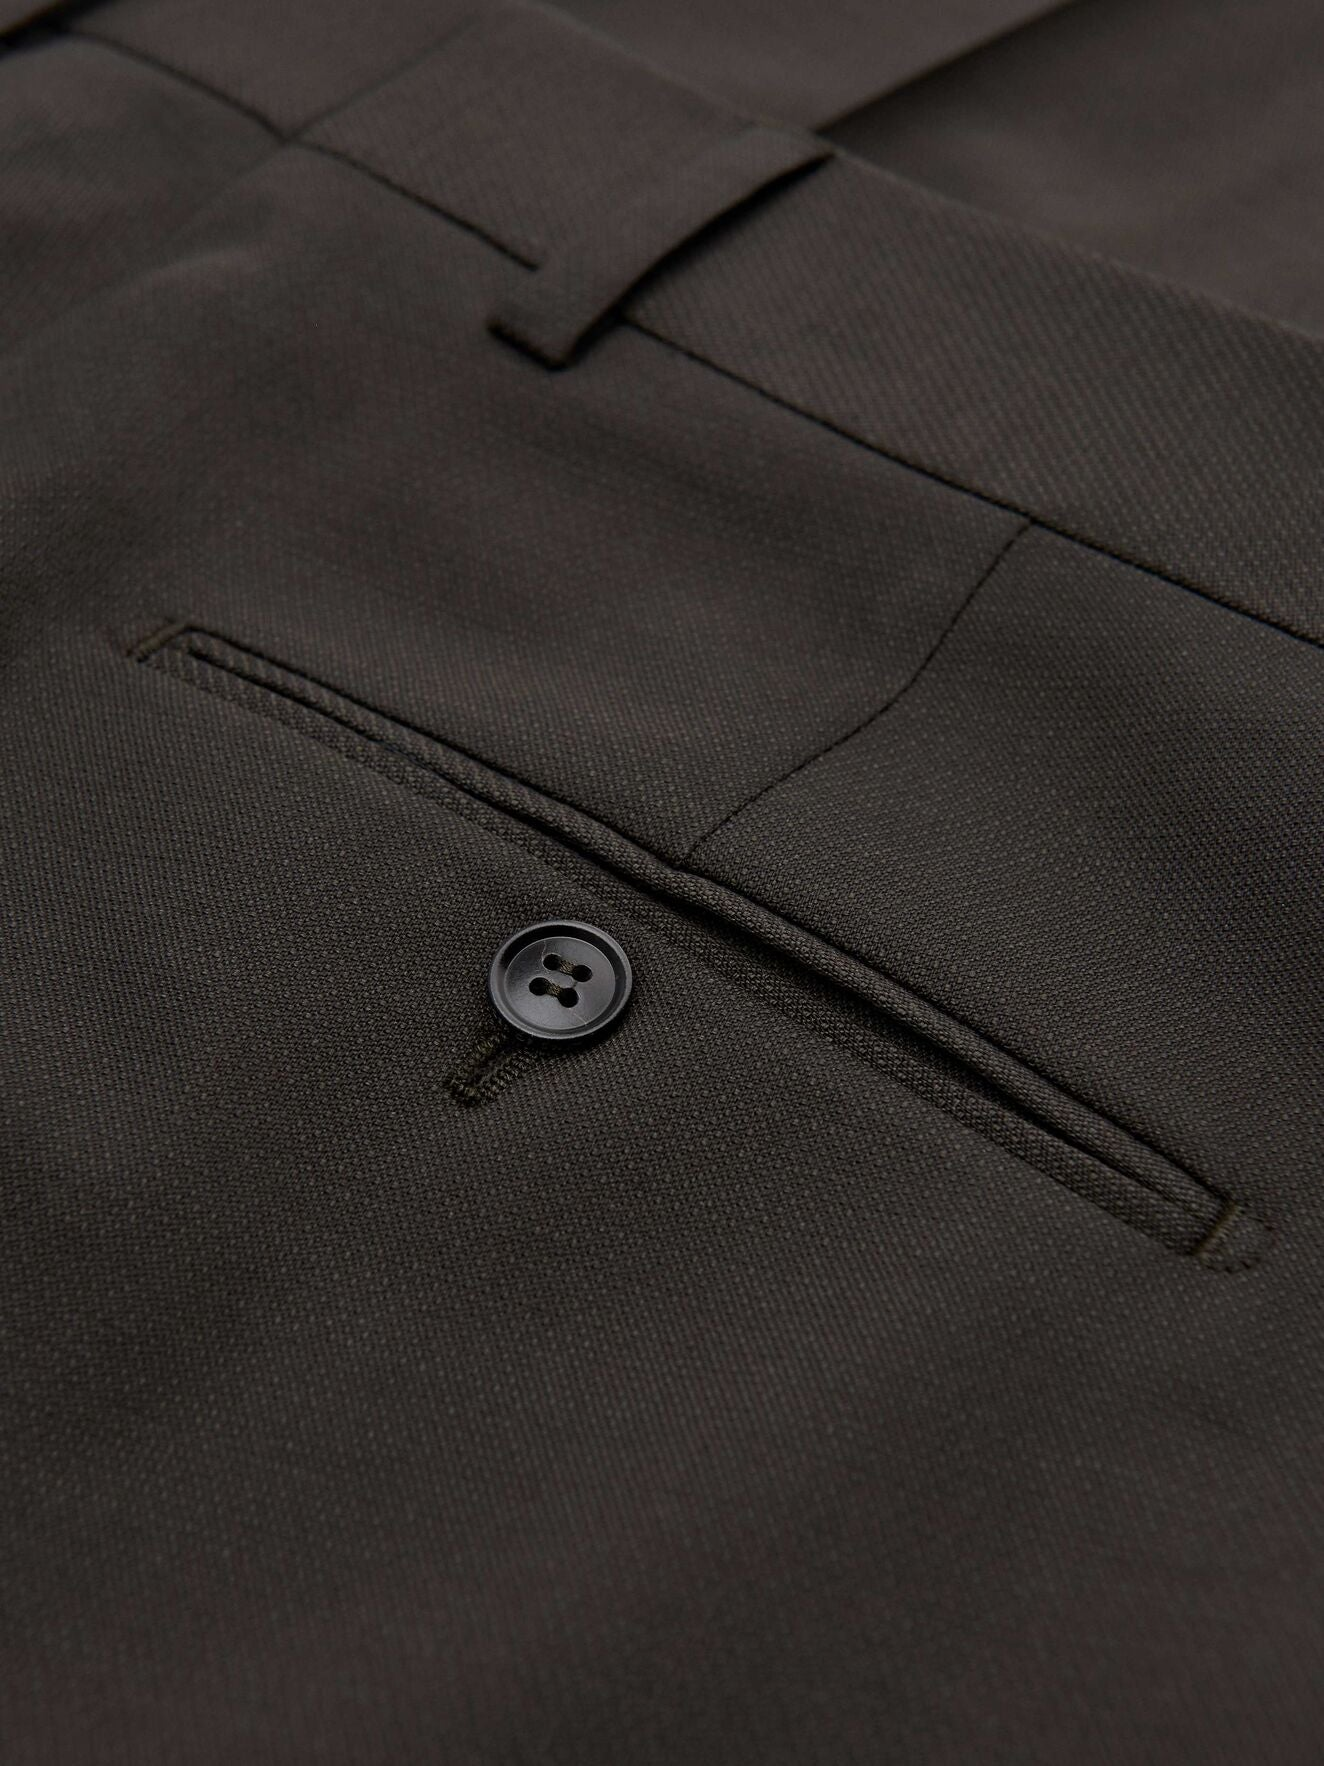 Tiger of Sweden Wool Trousers in Charcoal color in details